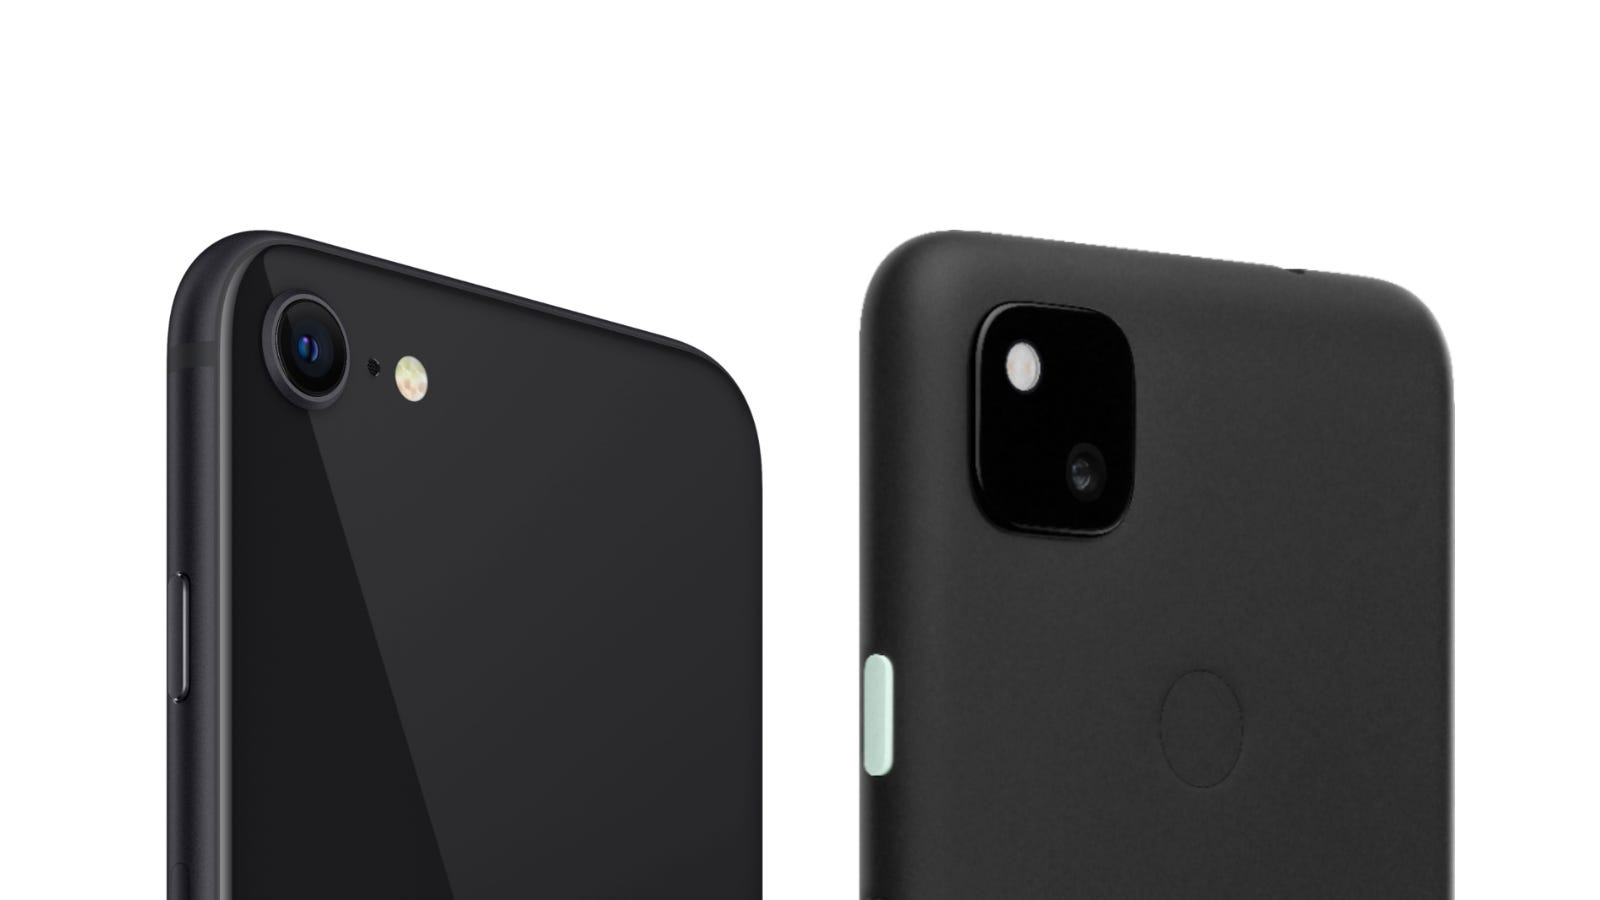 Pixel 4a and iPhone SE Cameras